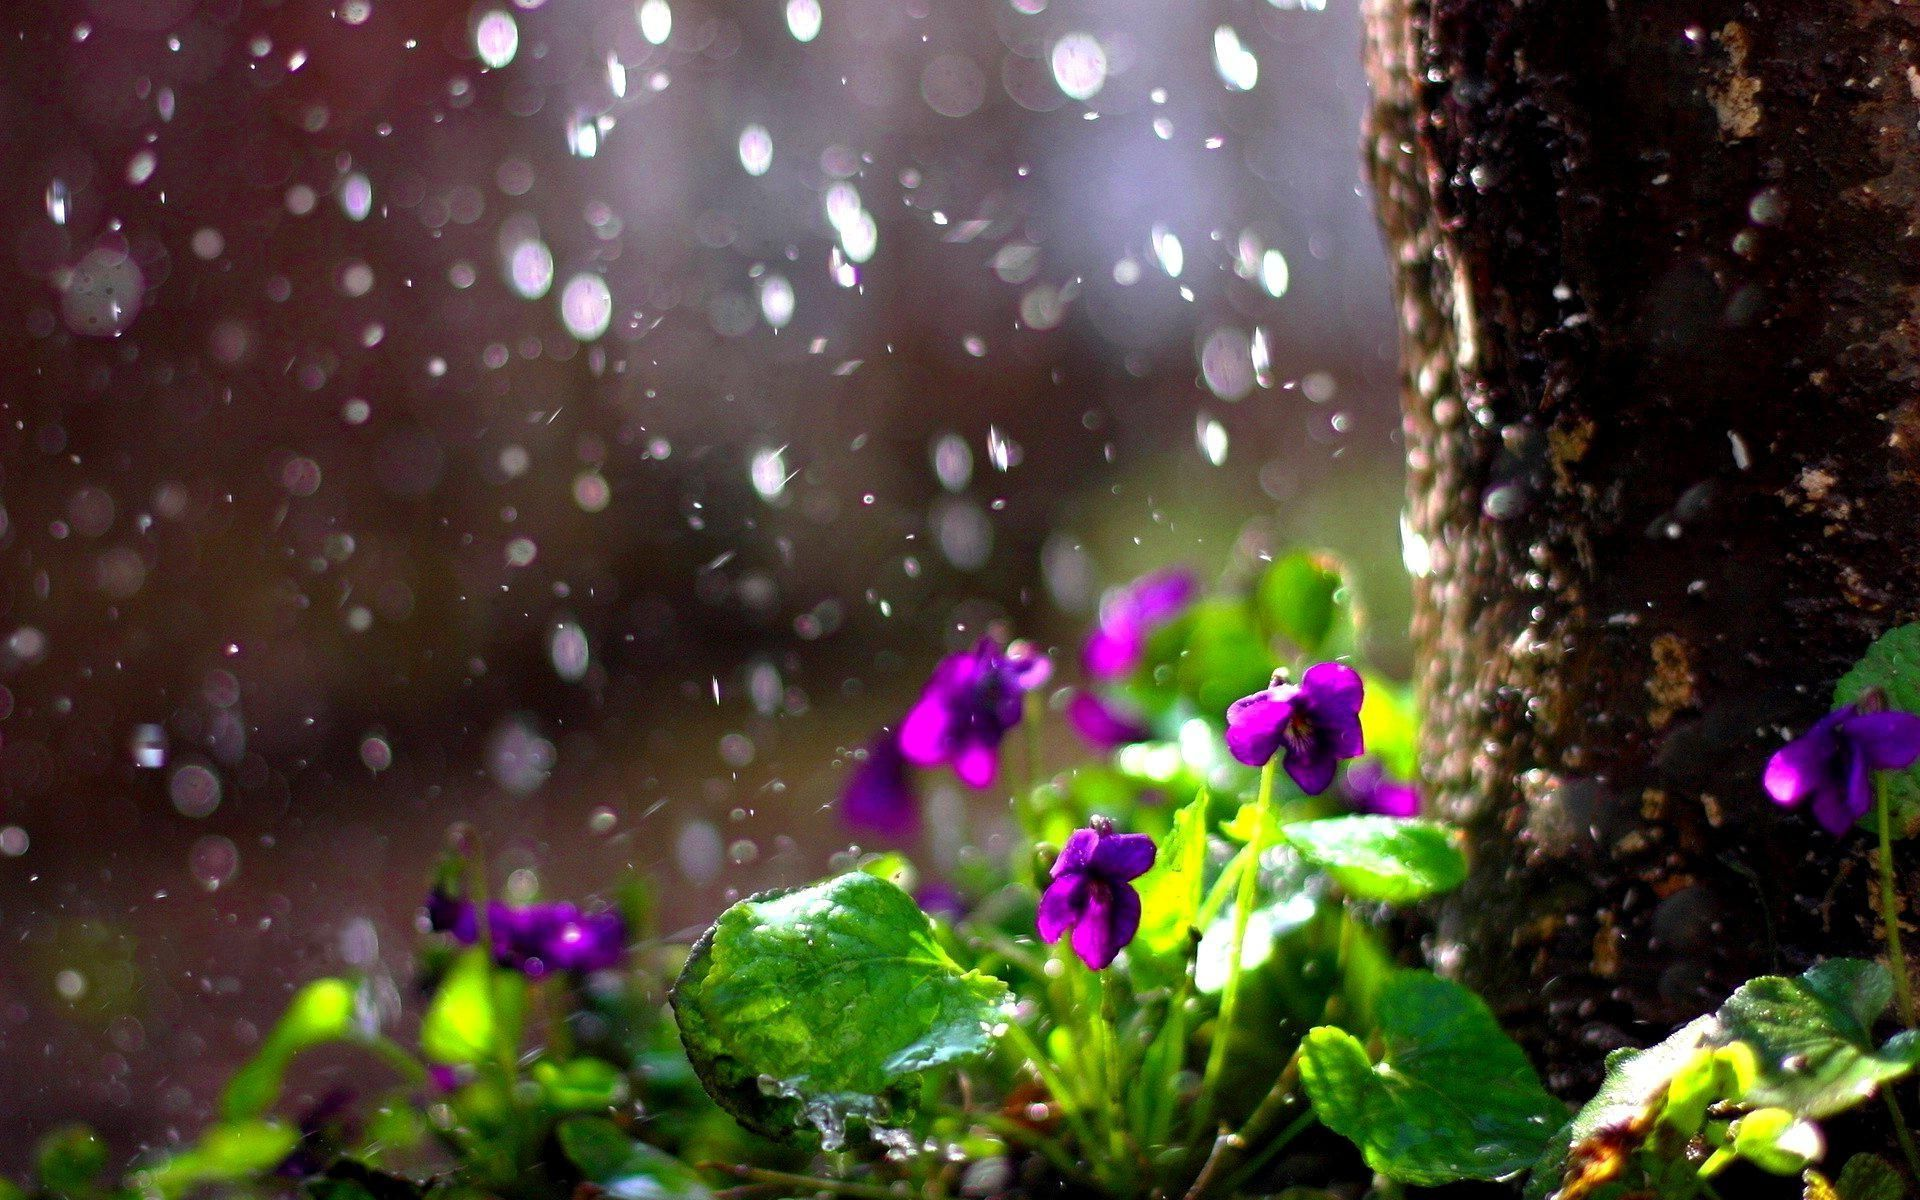 Spring Rain Wallpapers Top Free Spring Rain Backgrounds Wallpaperaccess